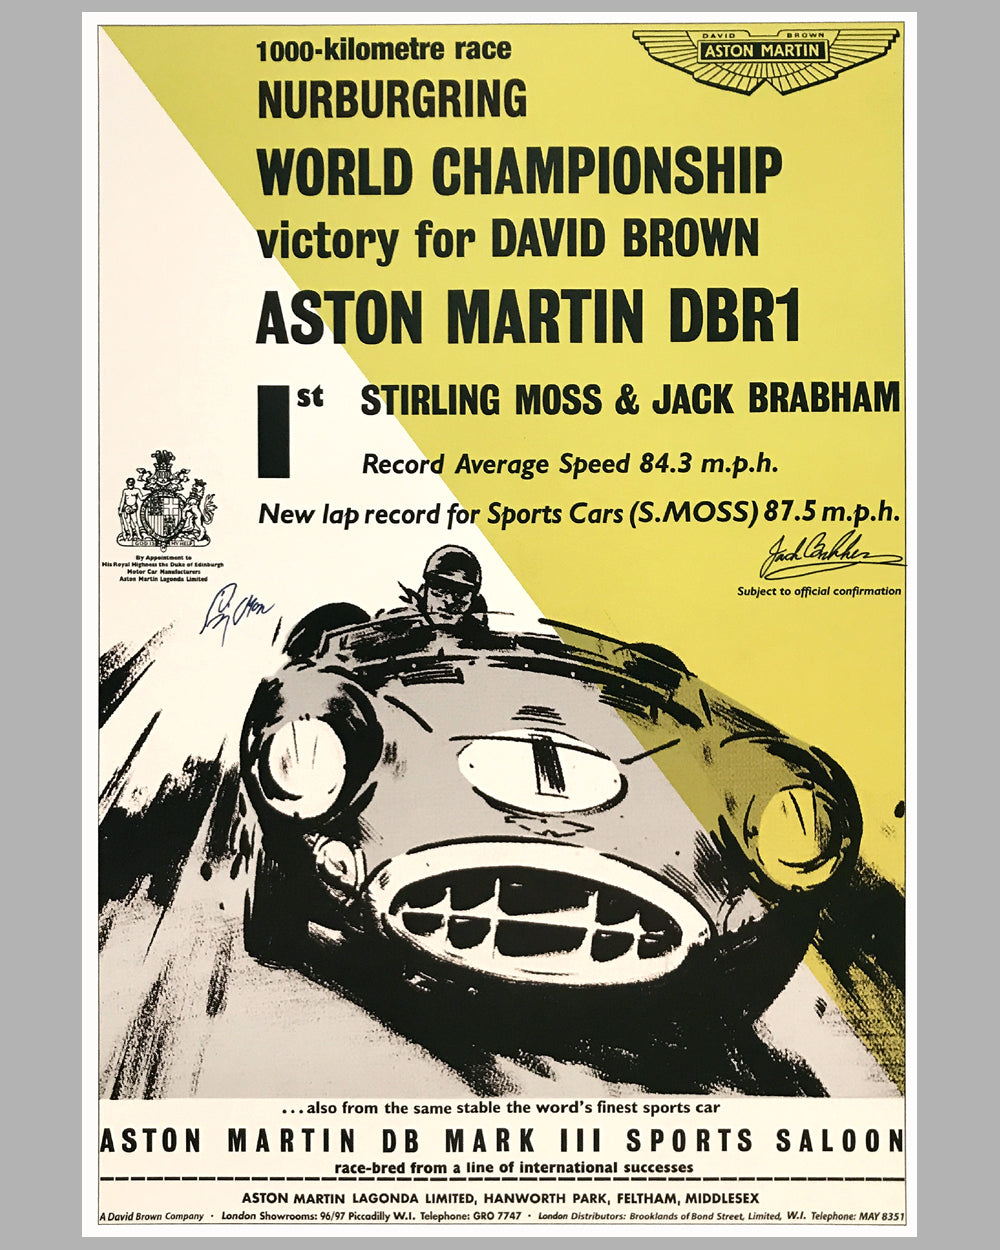 1000 KM of Nurburgring autographed Aston Martin victory poster